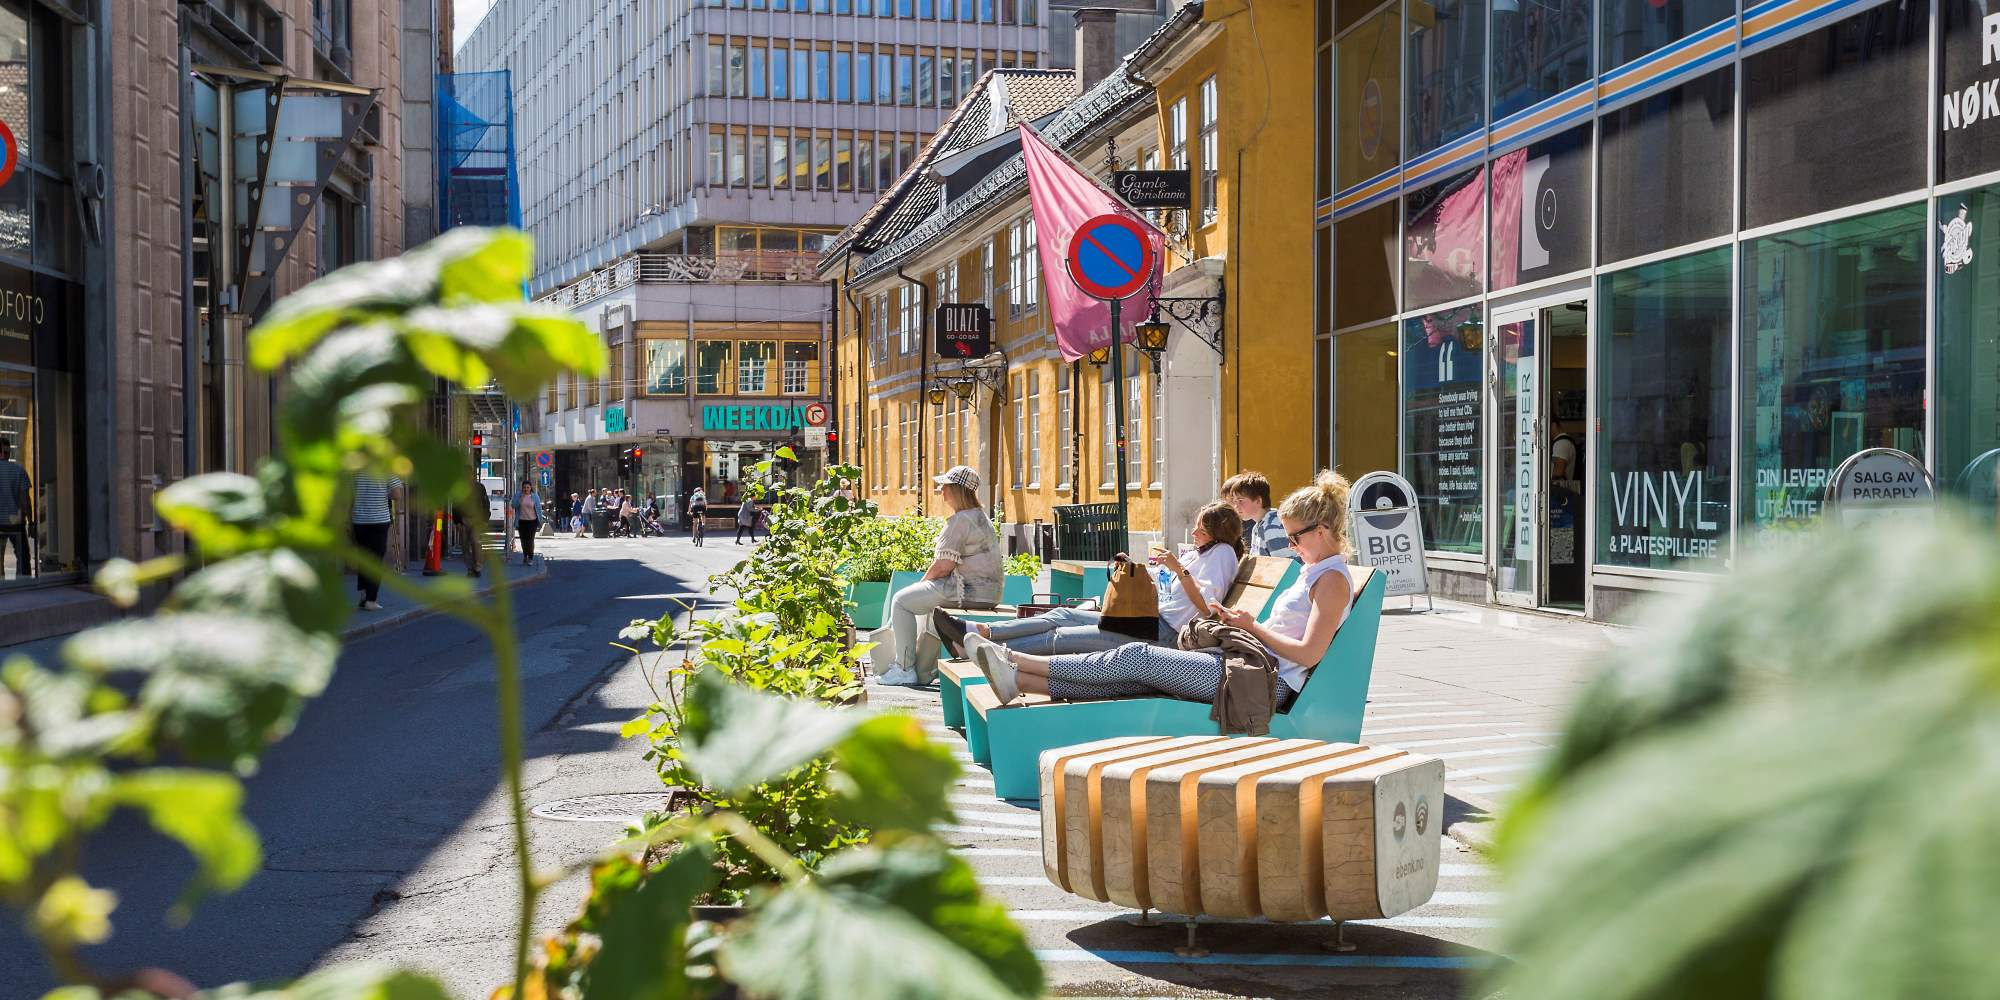 Udestående Green Oslo | Inspiration for an eco-friendly stay JA58